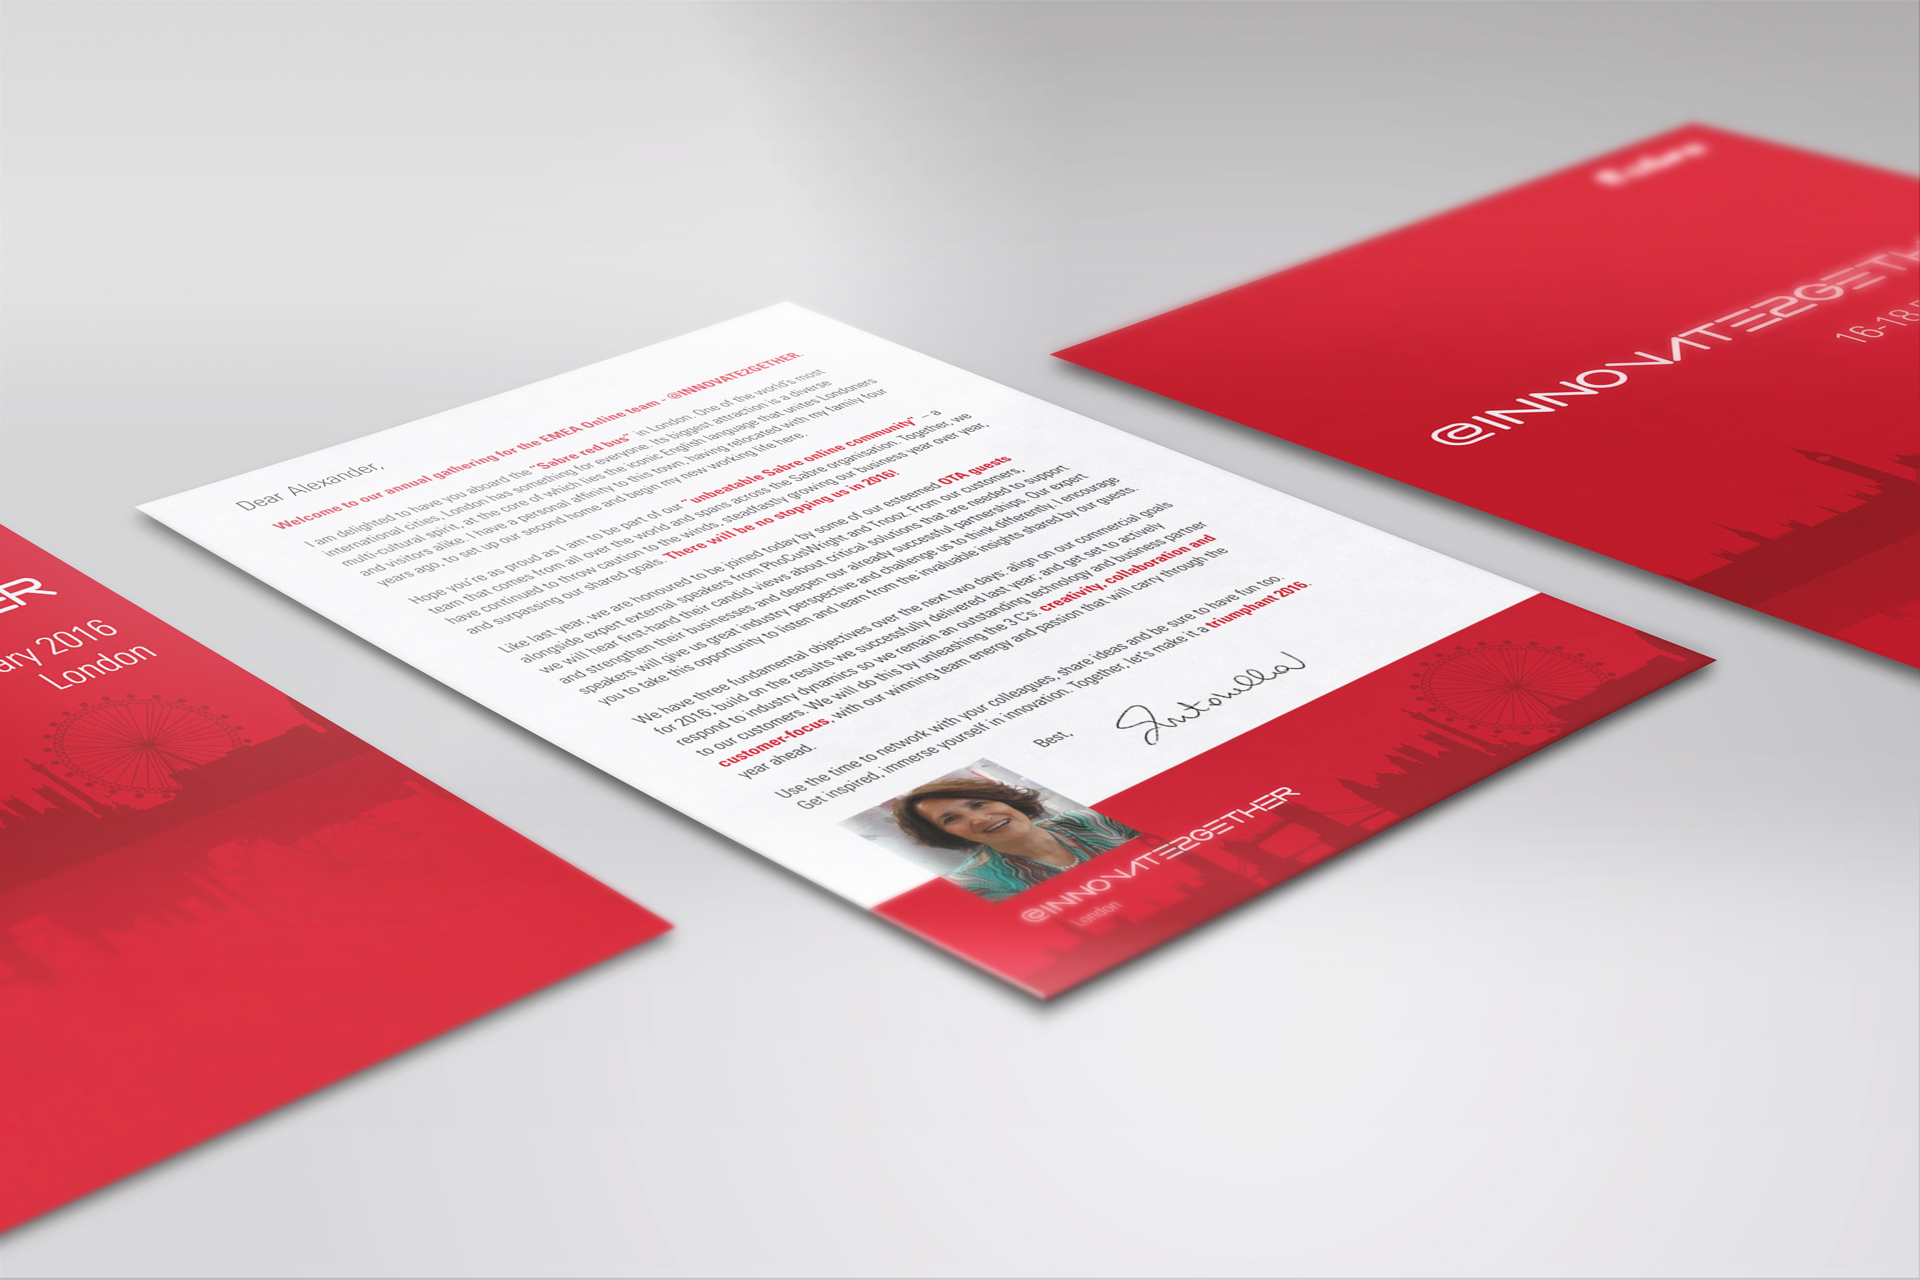 sabre_innovate_2gether_mockup_welcome_note_web